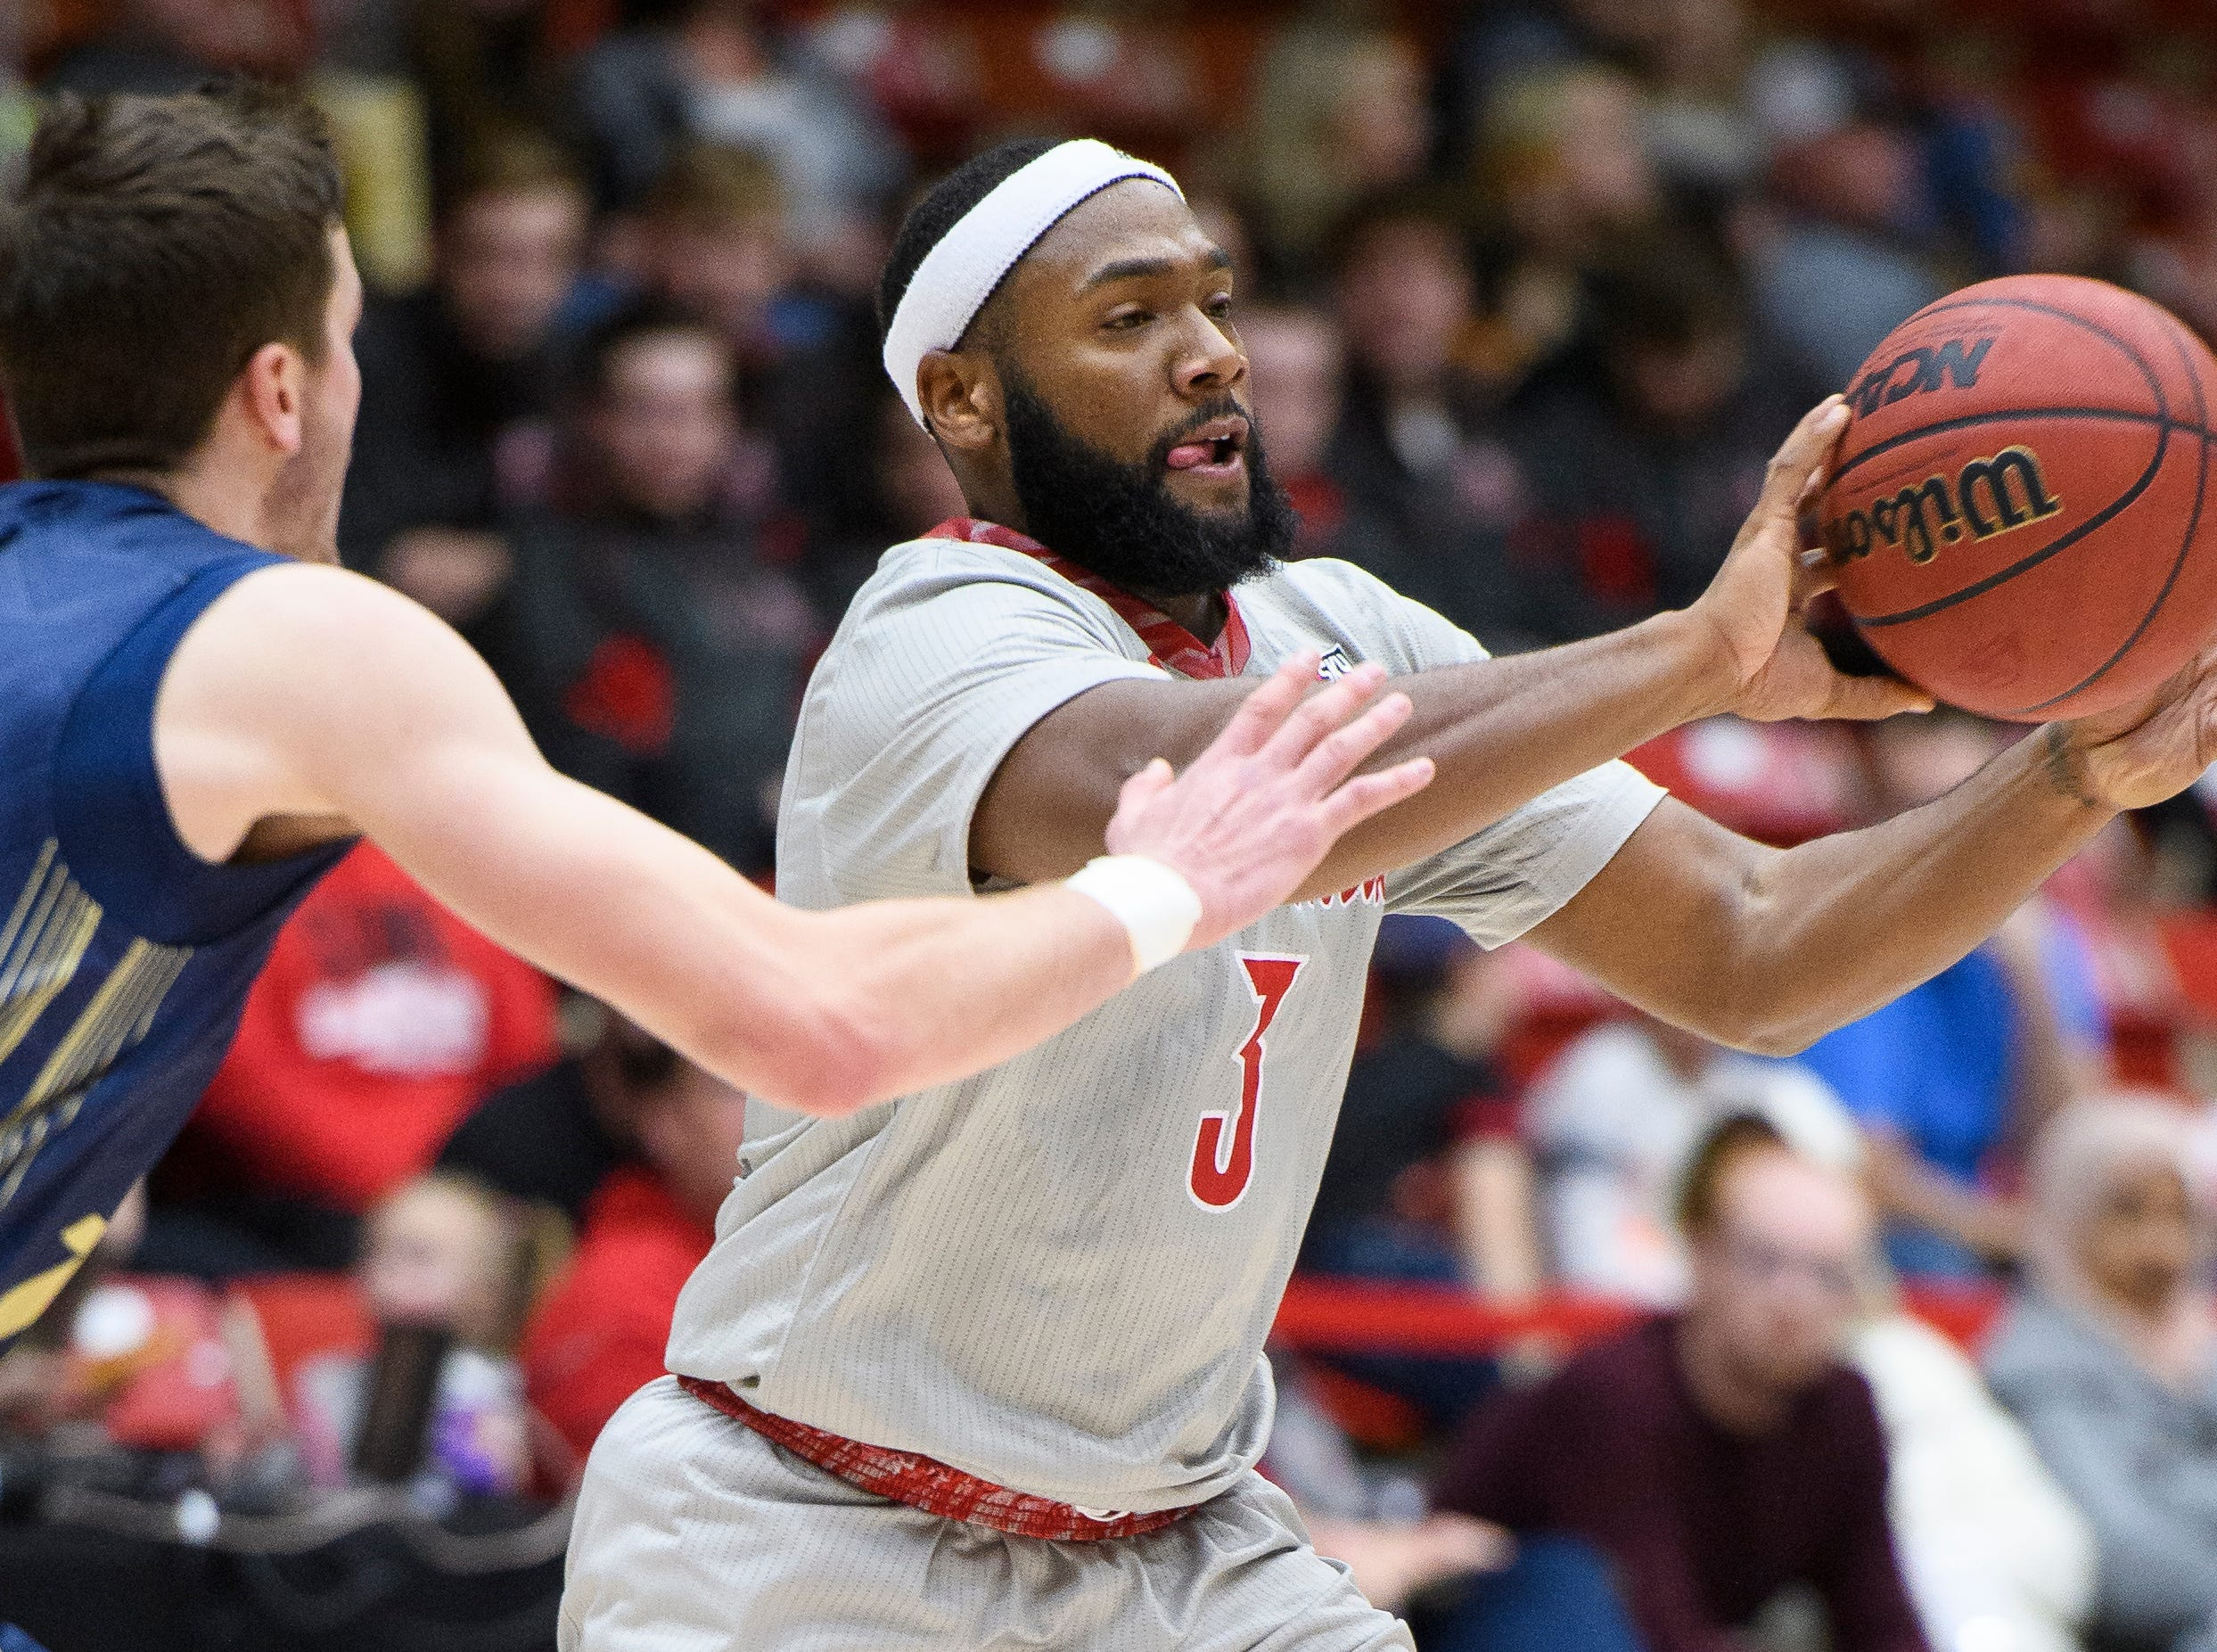 Southern Utah University junior Jason Richardson (3) passes the ball against Montana State in the America First Event Center Saturday, December 29, 2018. SUU lost, 92-62.